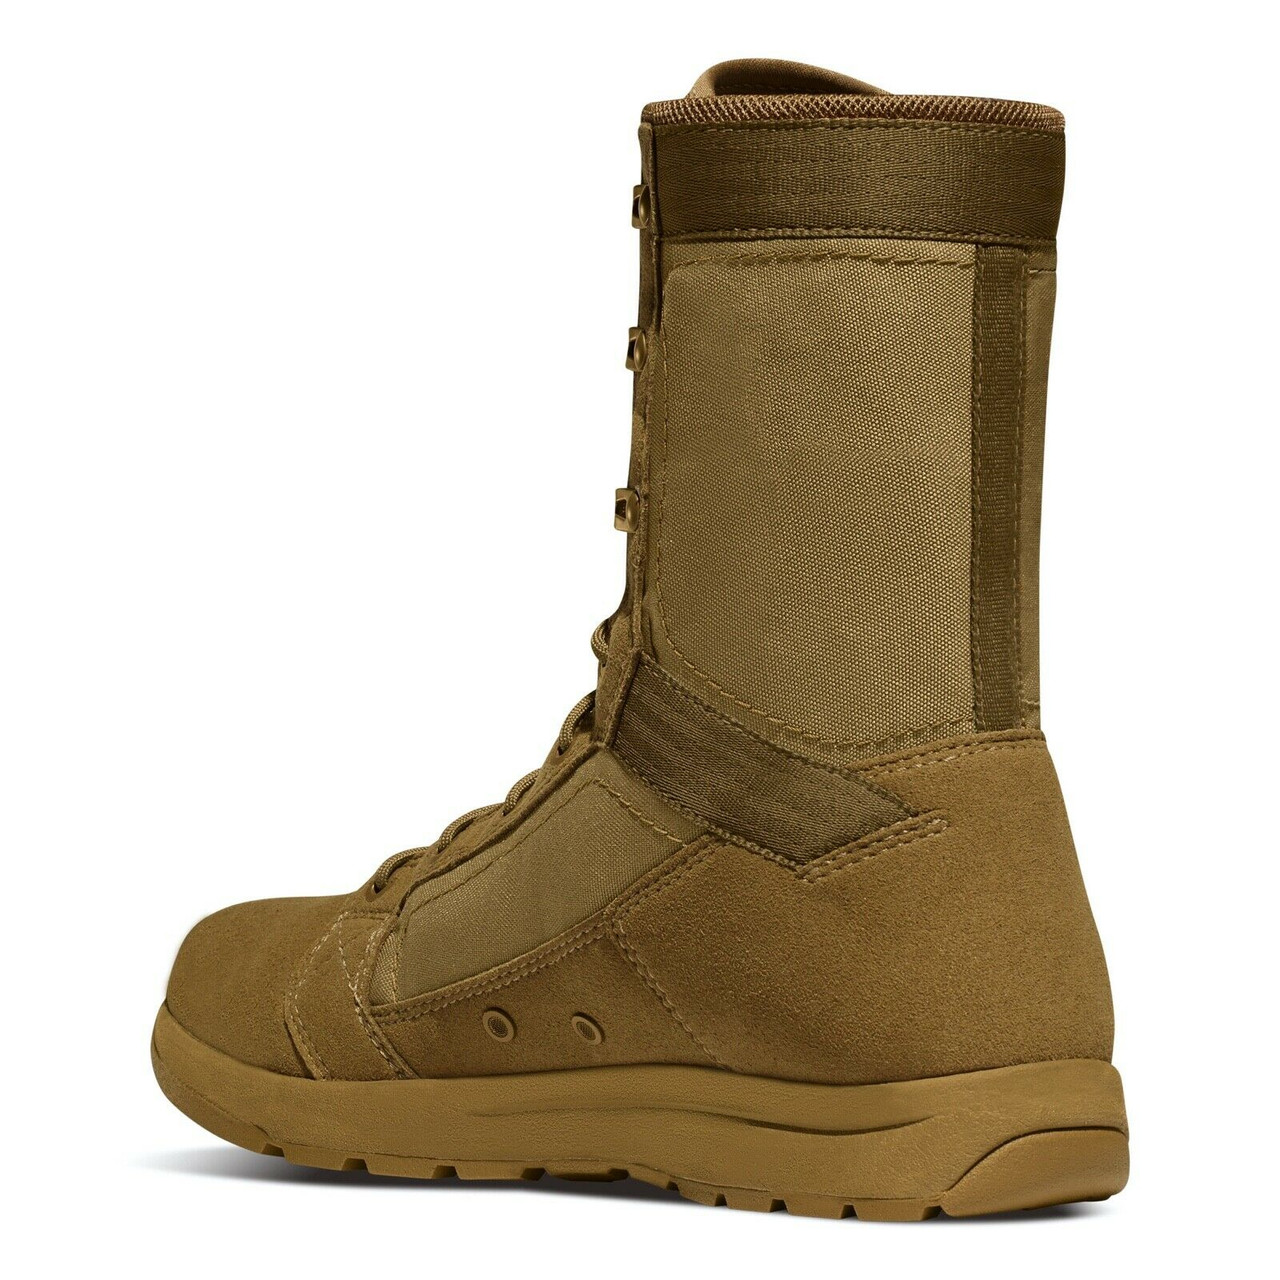 "DANNER® TACHYON 8"" MILITARY TACTICAL COYOTE AR-670-1 BOOTS 50136"